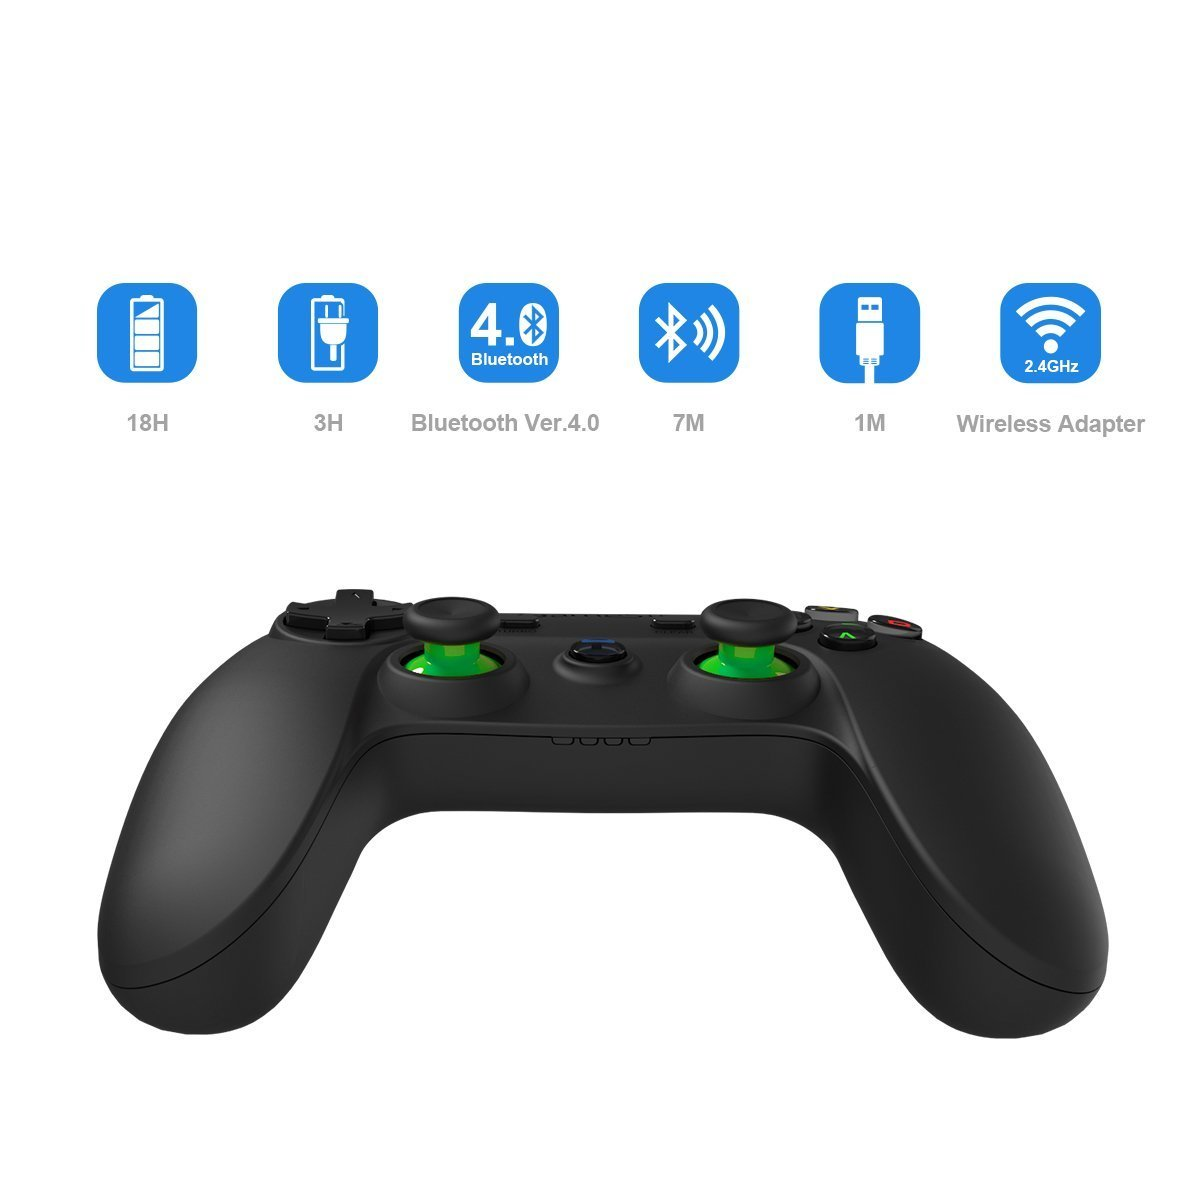 Buy GameSir G3S Advanced Edition 3 in 1 Gamepad/Controller with ...